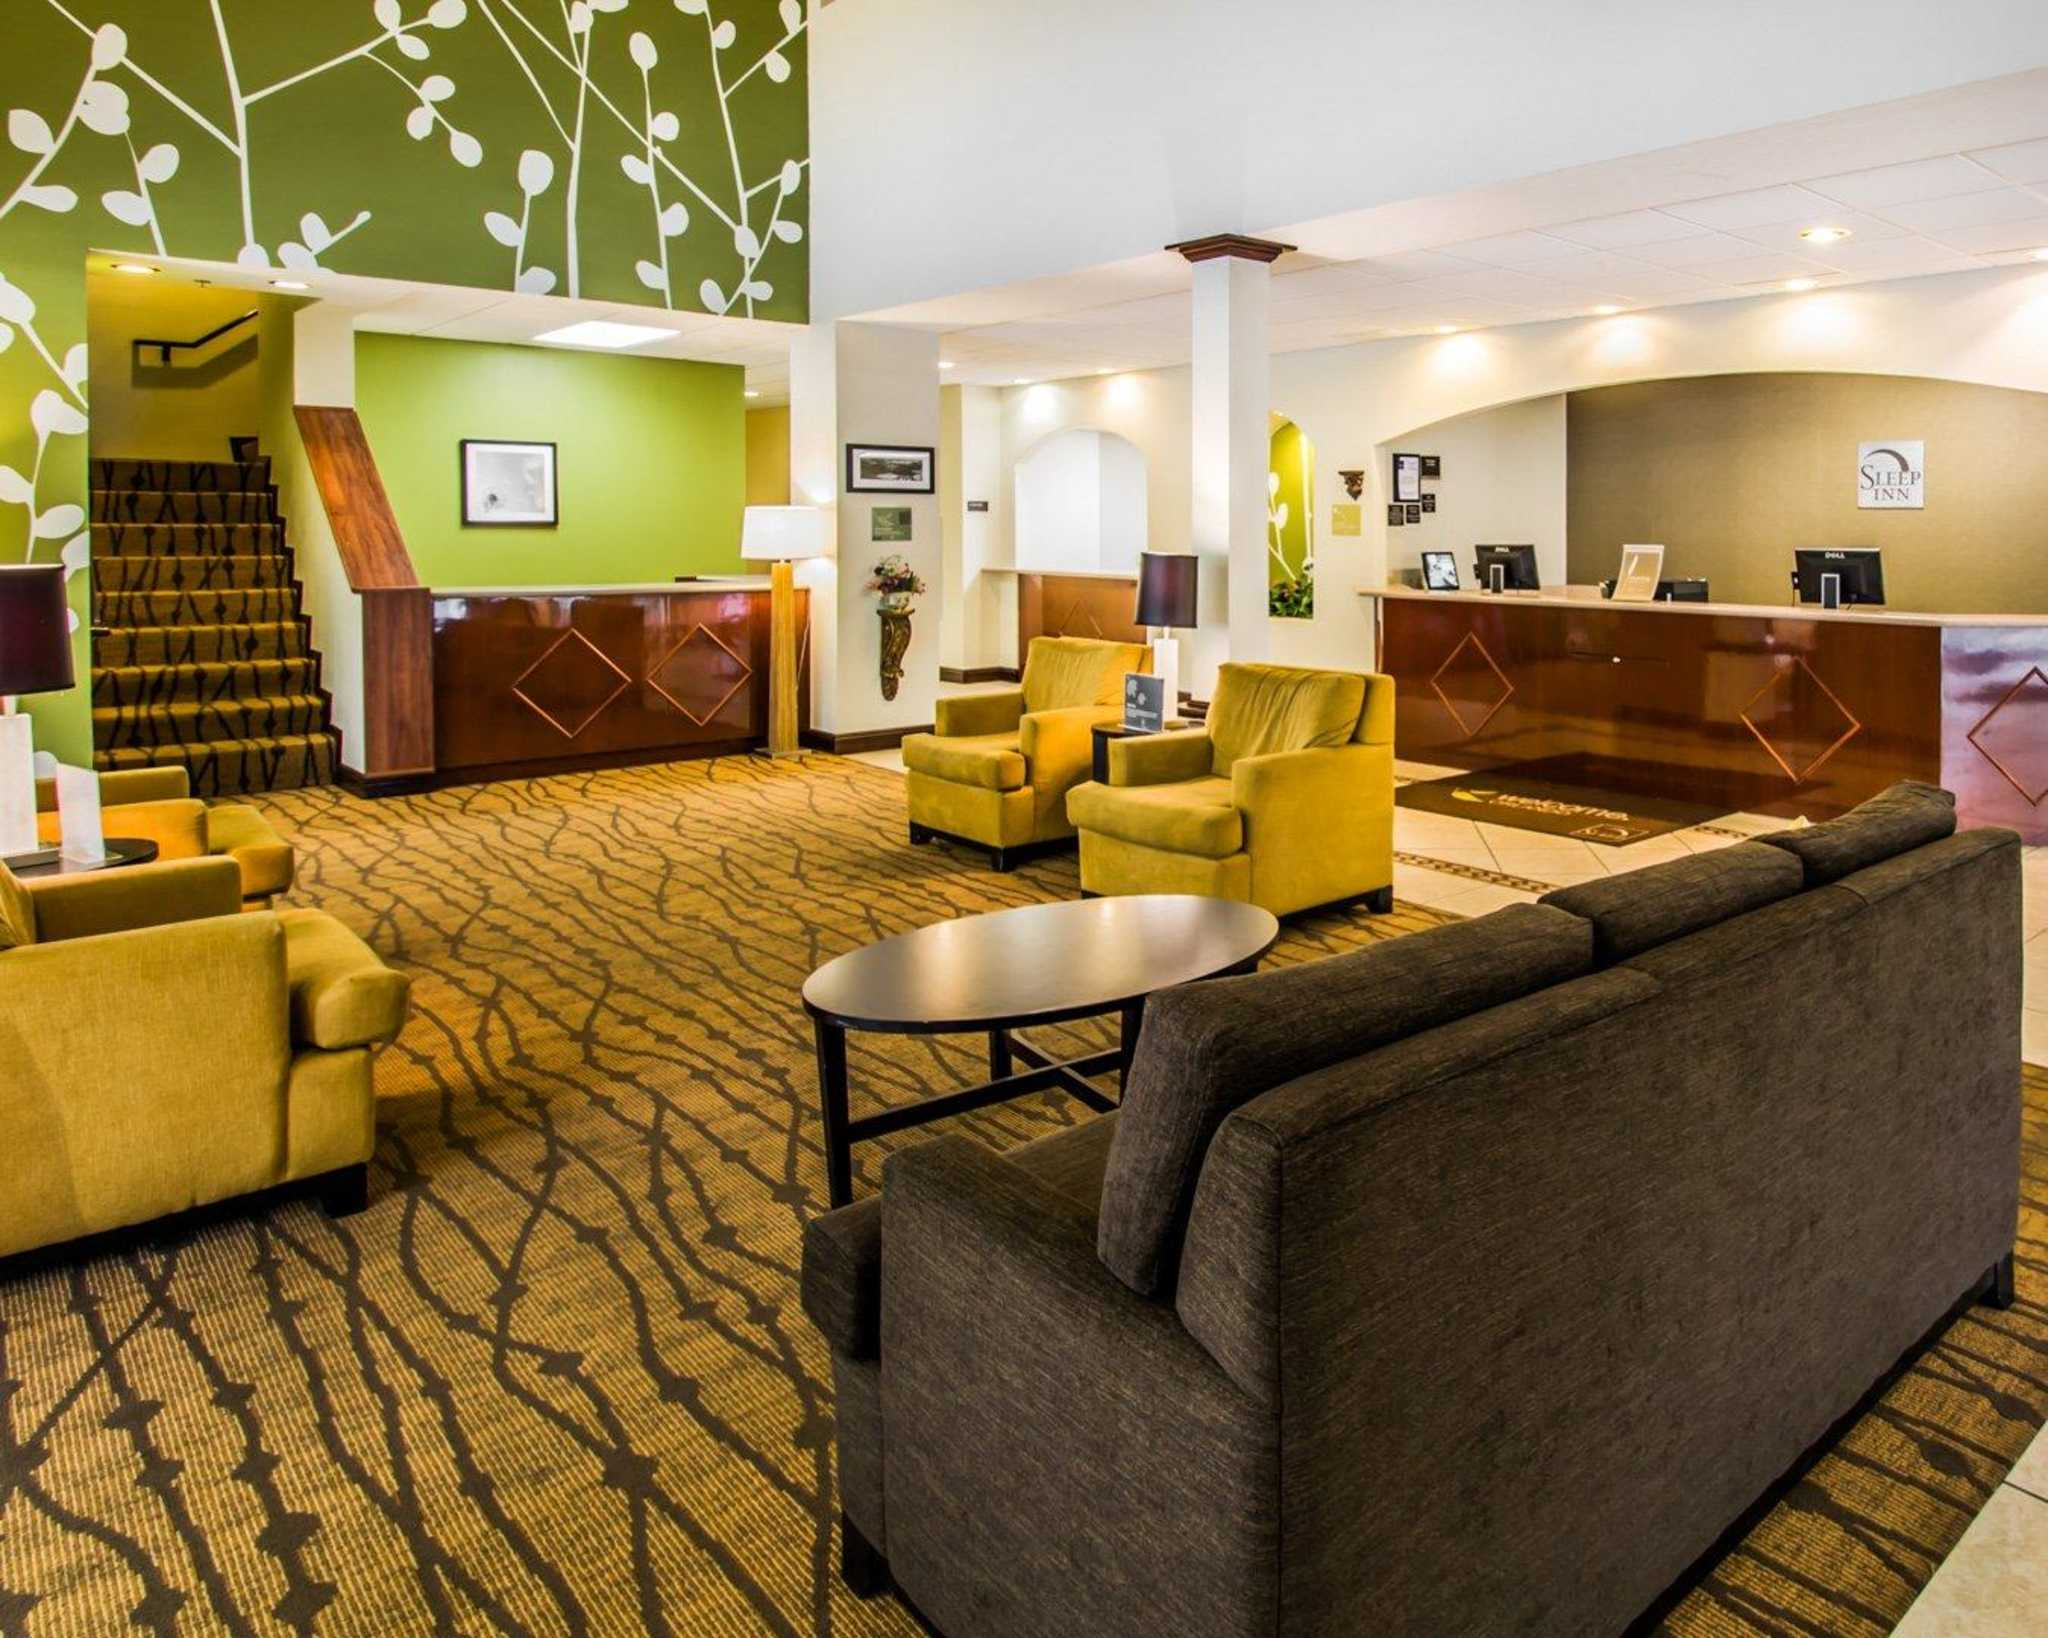 Sleep Inn & Suites Orlando International Airport image 15